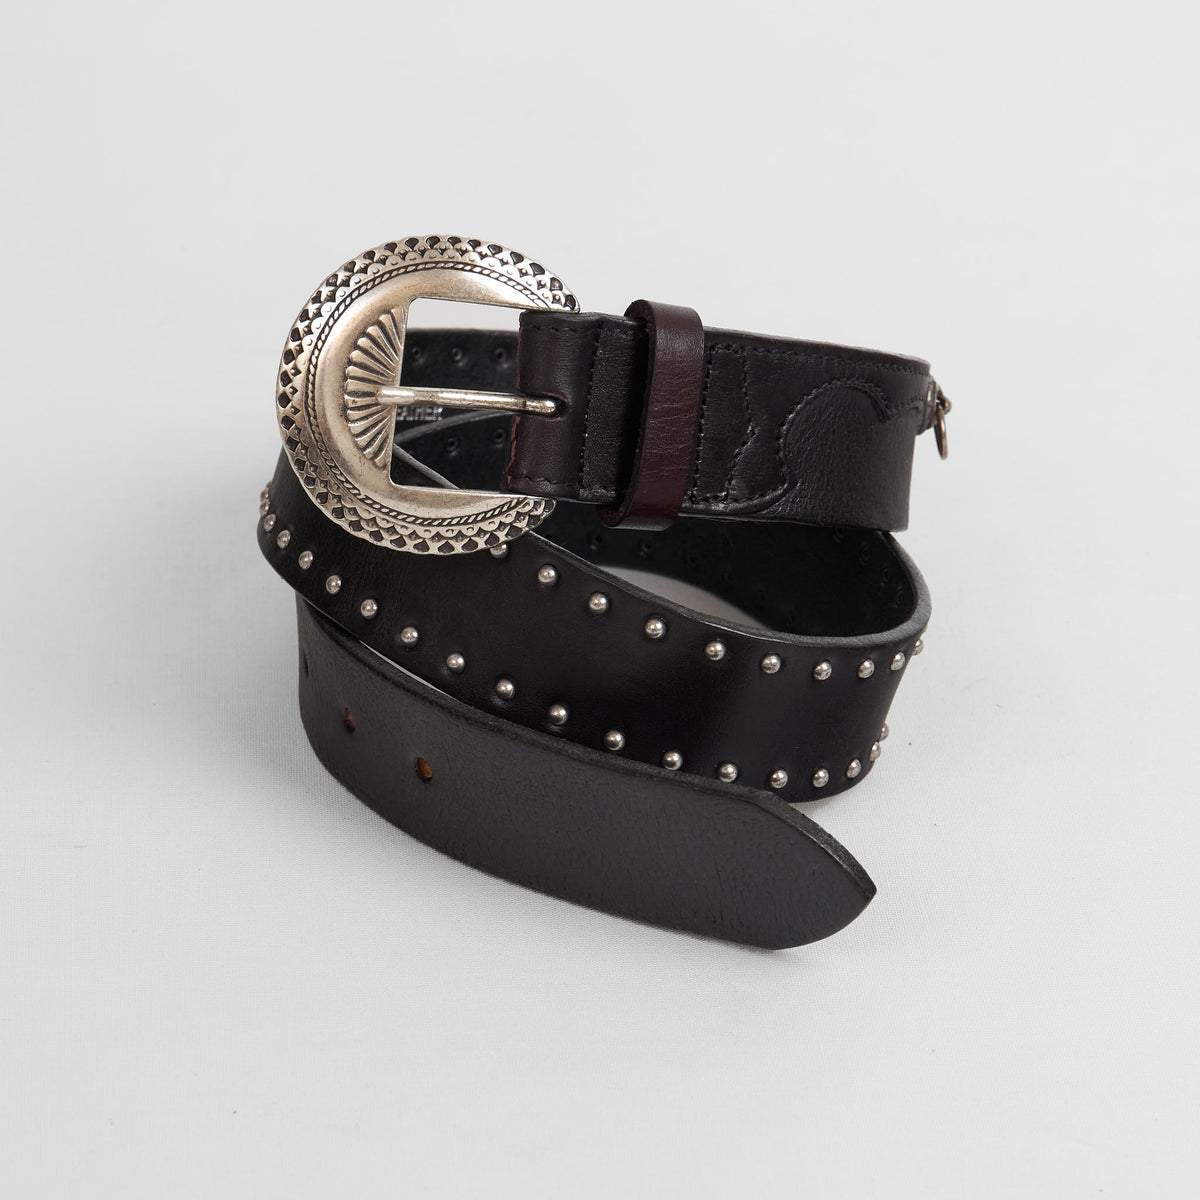 Golden Goose Deluxe Brand Studs Leather Western Belt